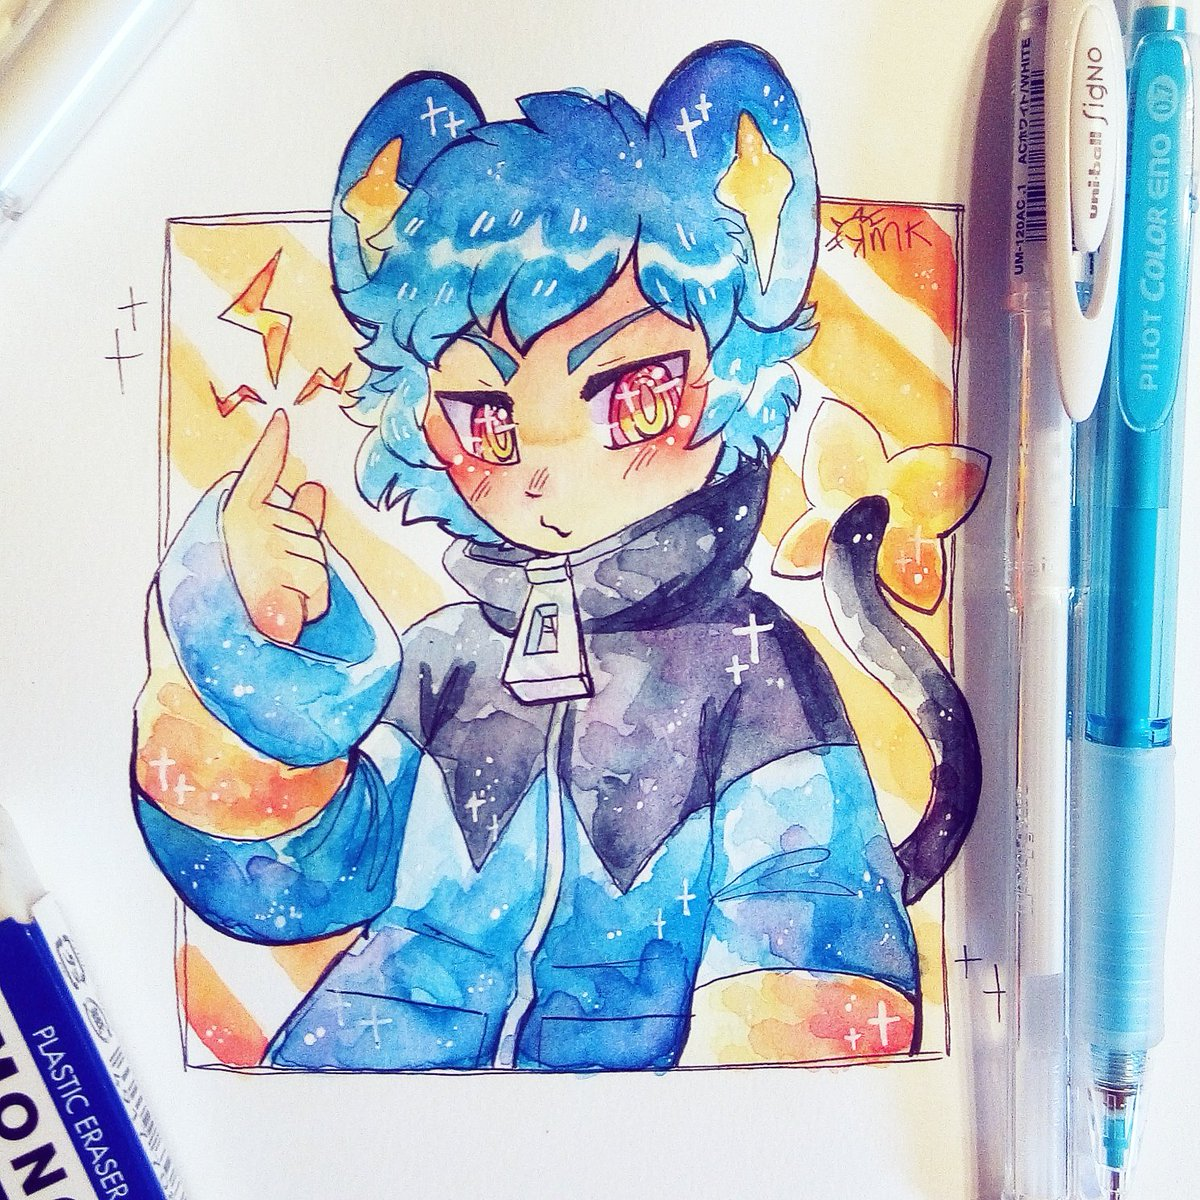 I took a small break today and doodled a smol shinx boy  #watercolor #doodle<br>http://pic.twitter.com/SEFHUypiDW